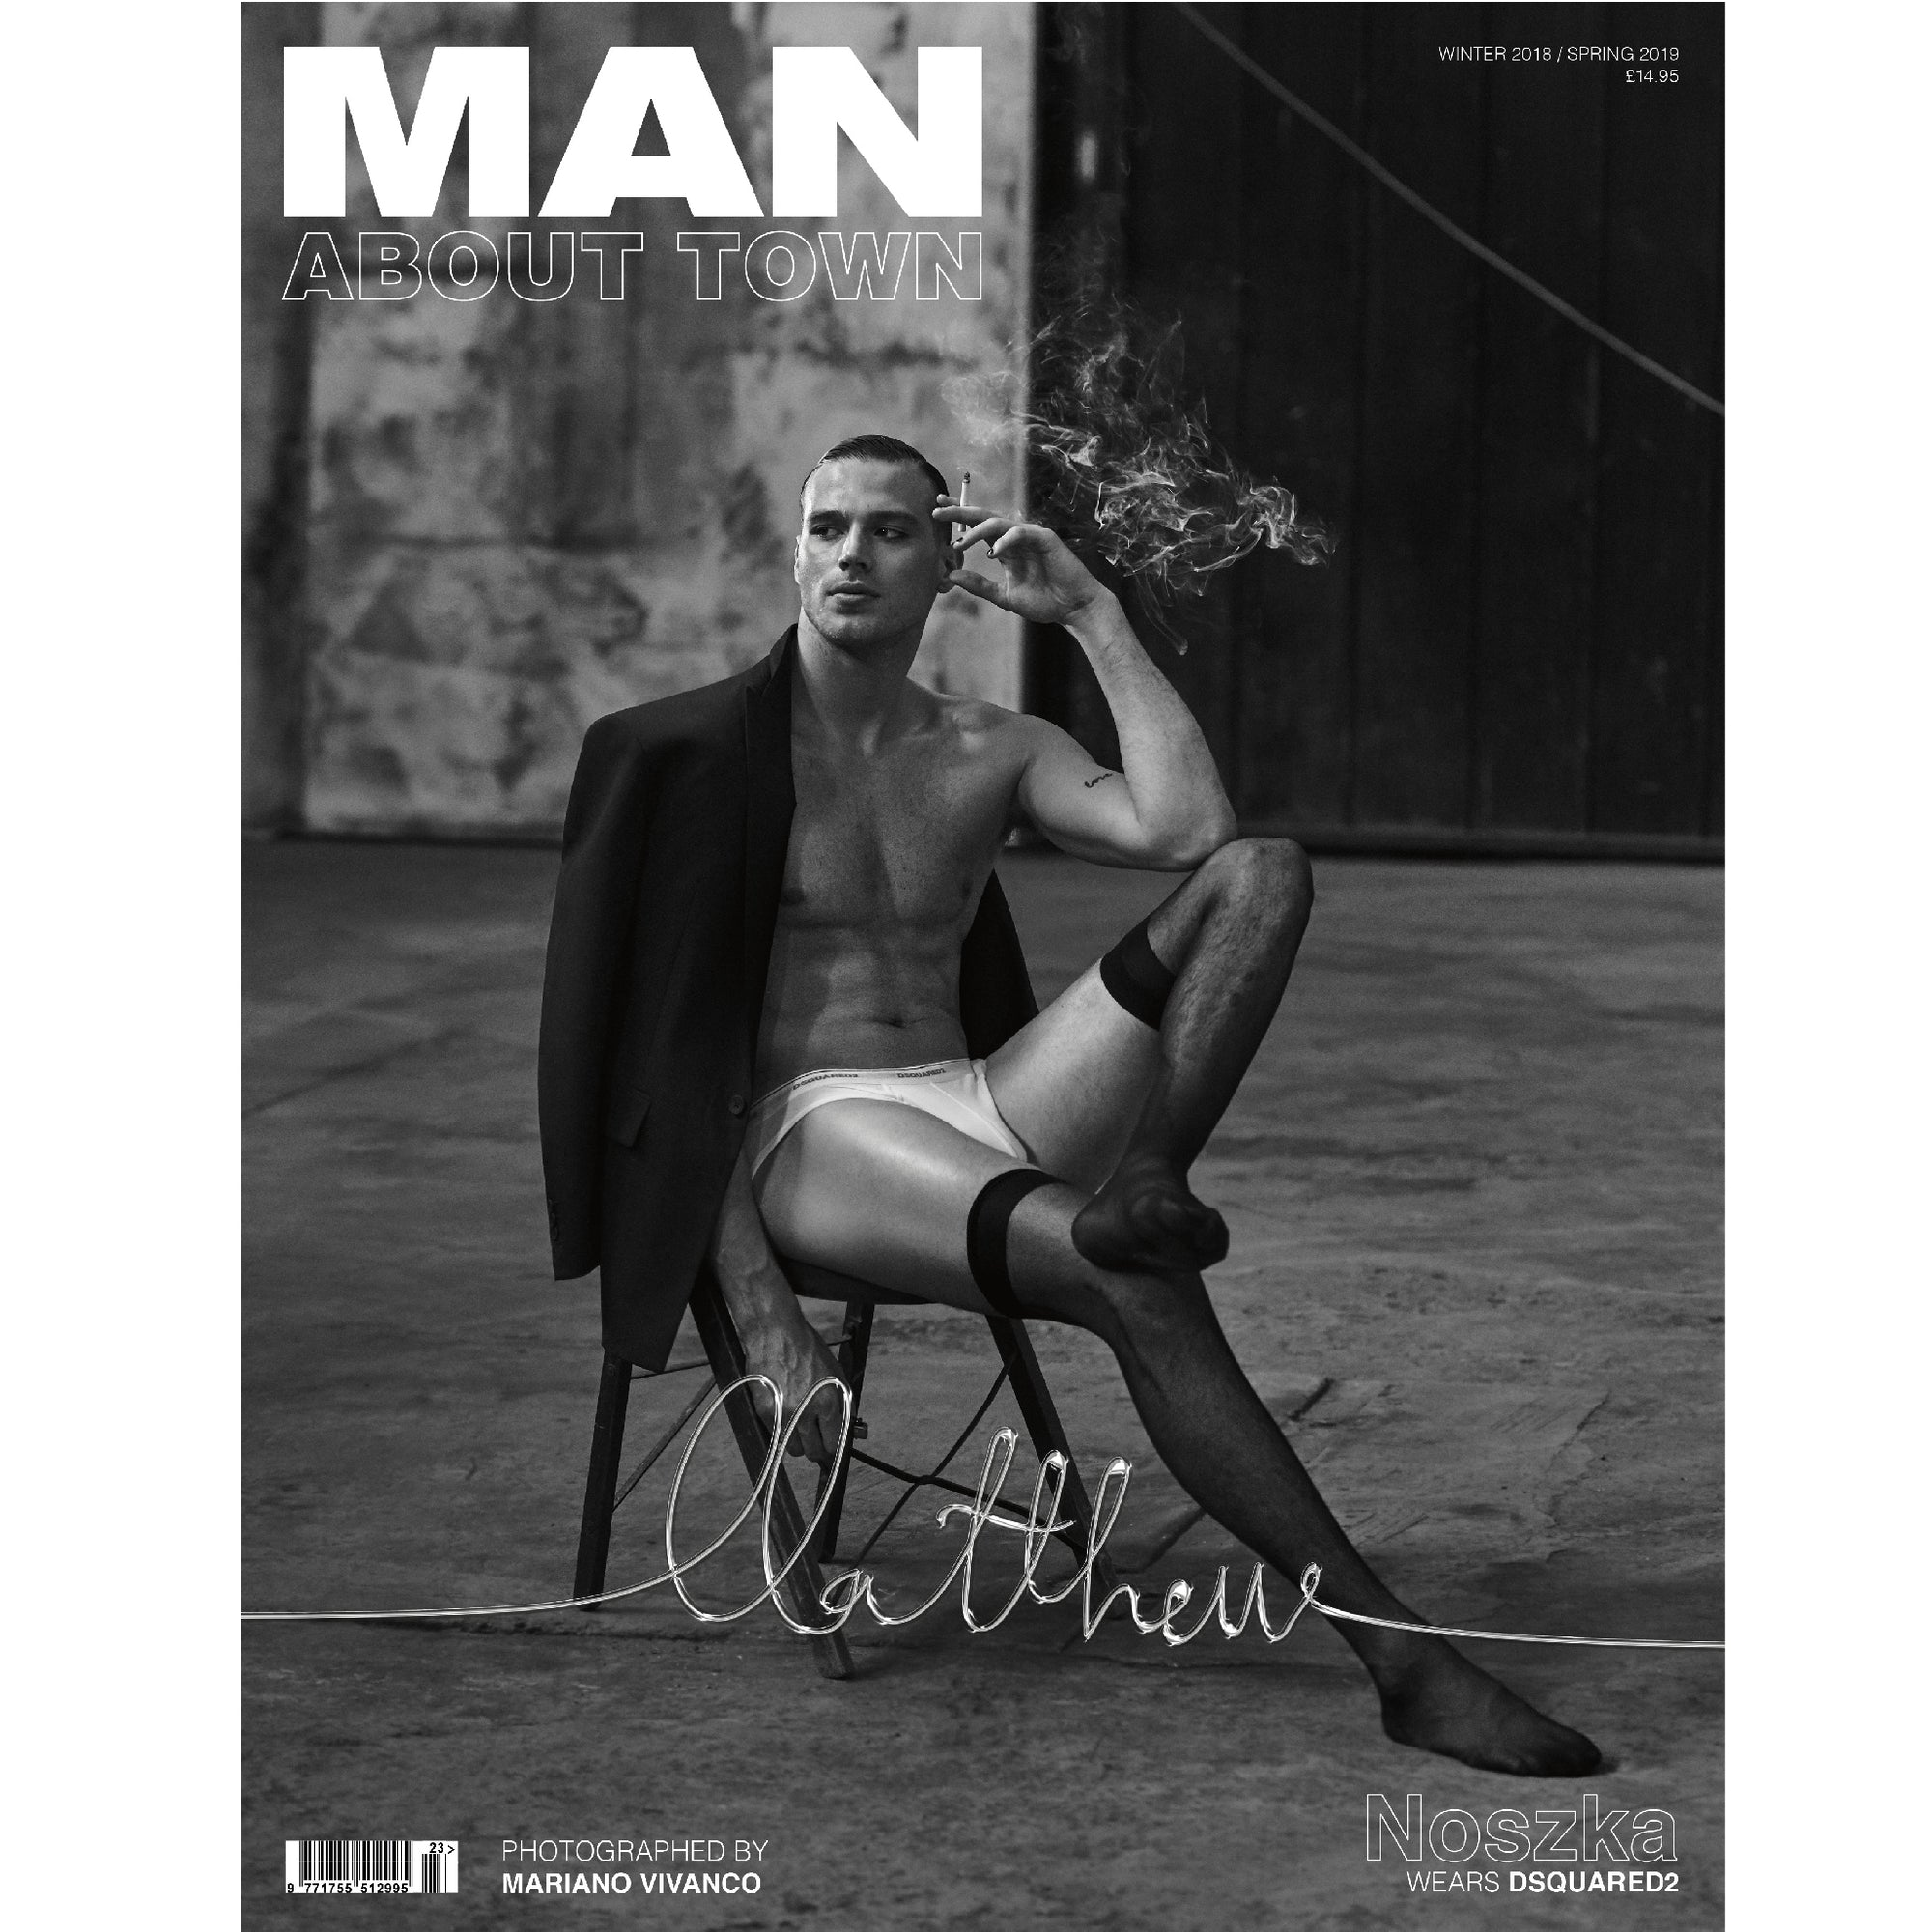 MATTHEW NOSZKA - Man About Town Winter 2018 / Spring 2019 Magazine